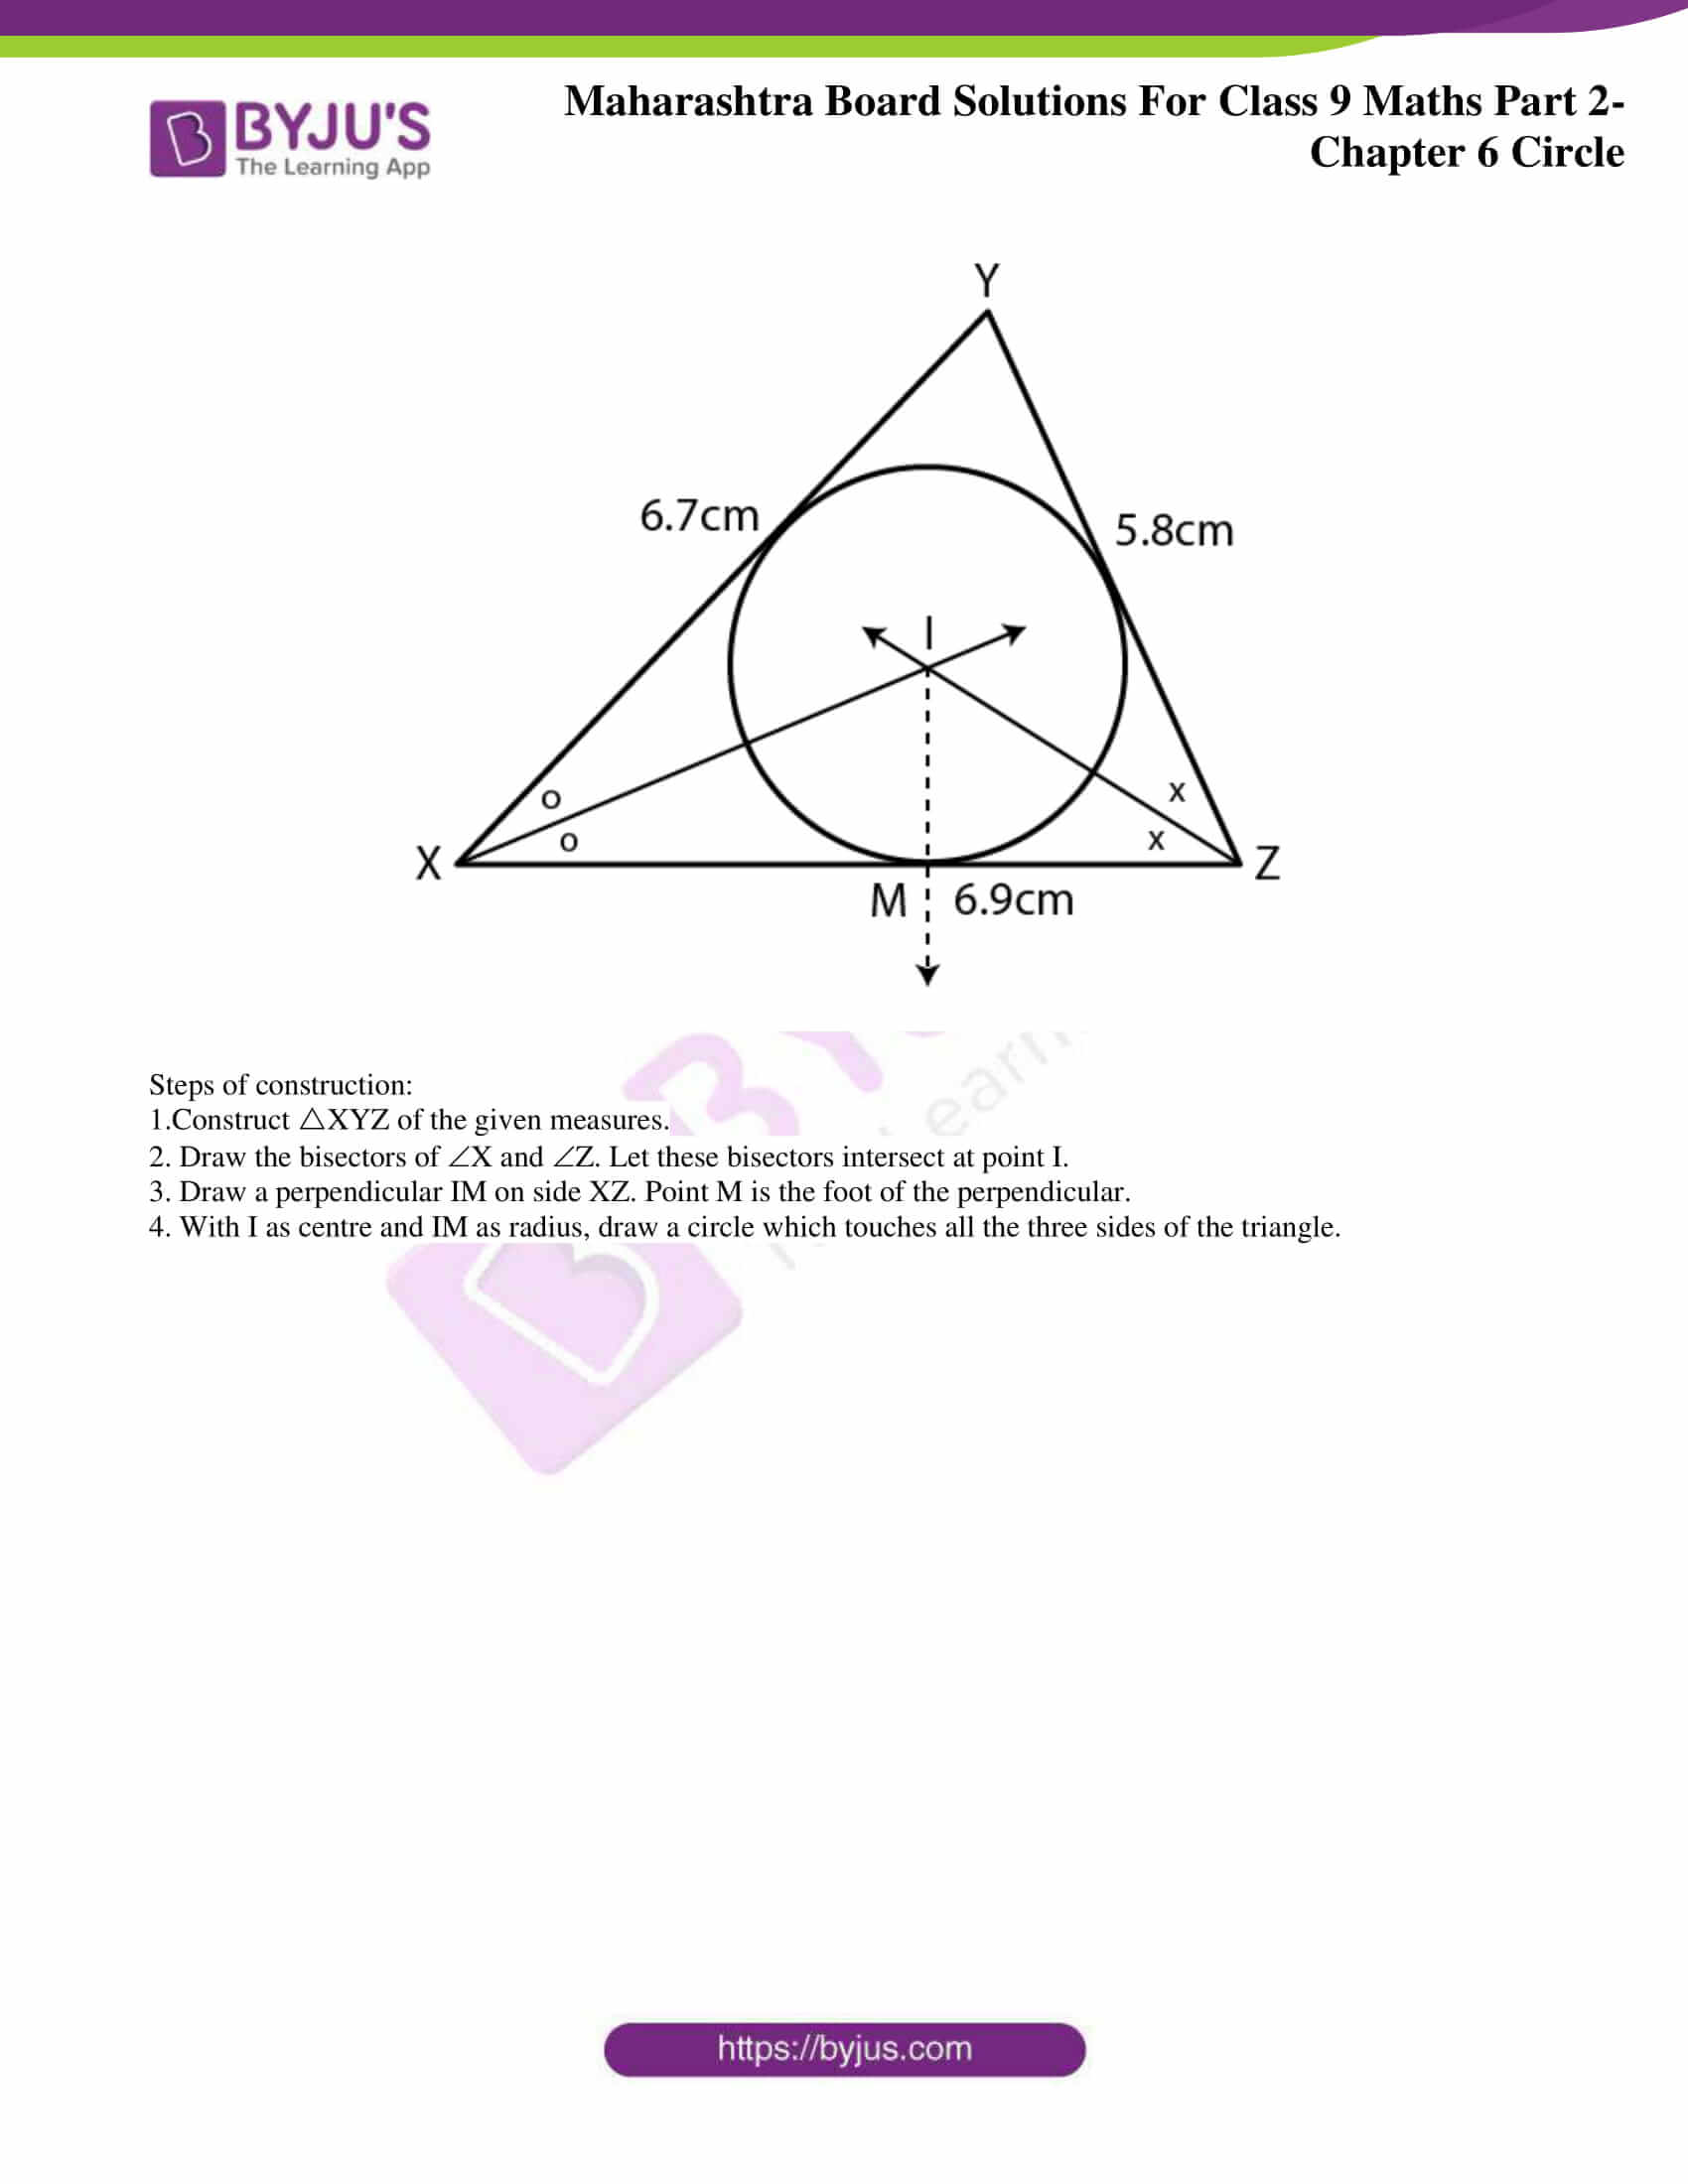 msbshse solutions for class 9 maths part 2 chapter 6 14